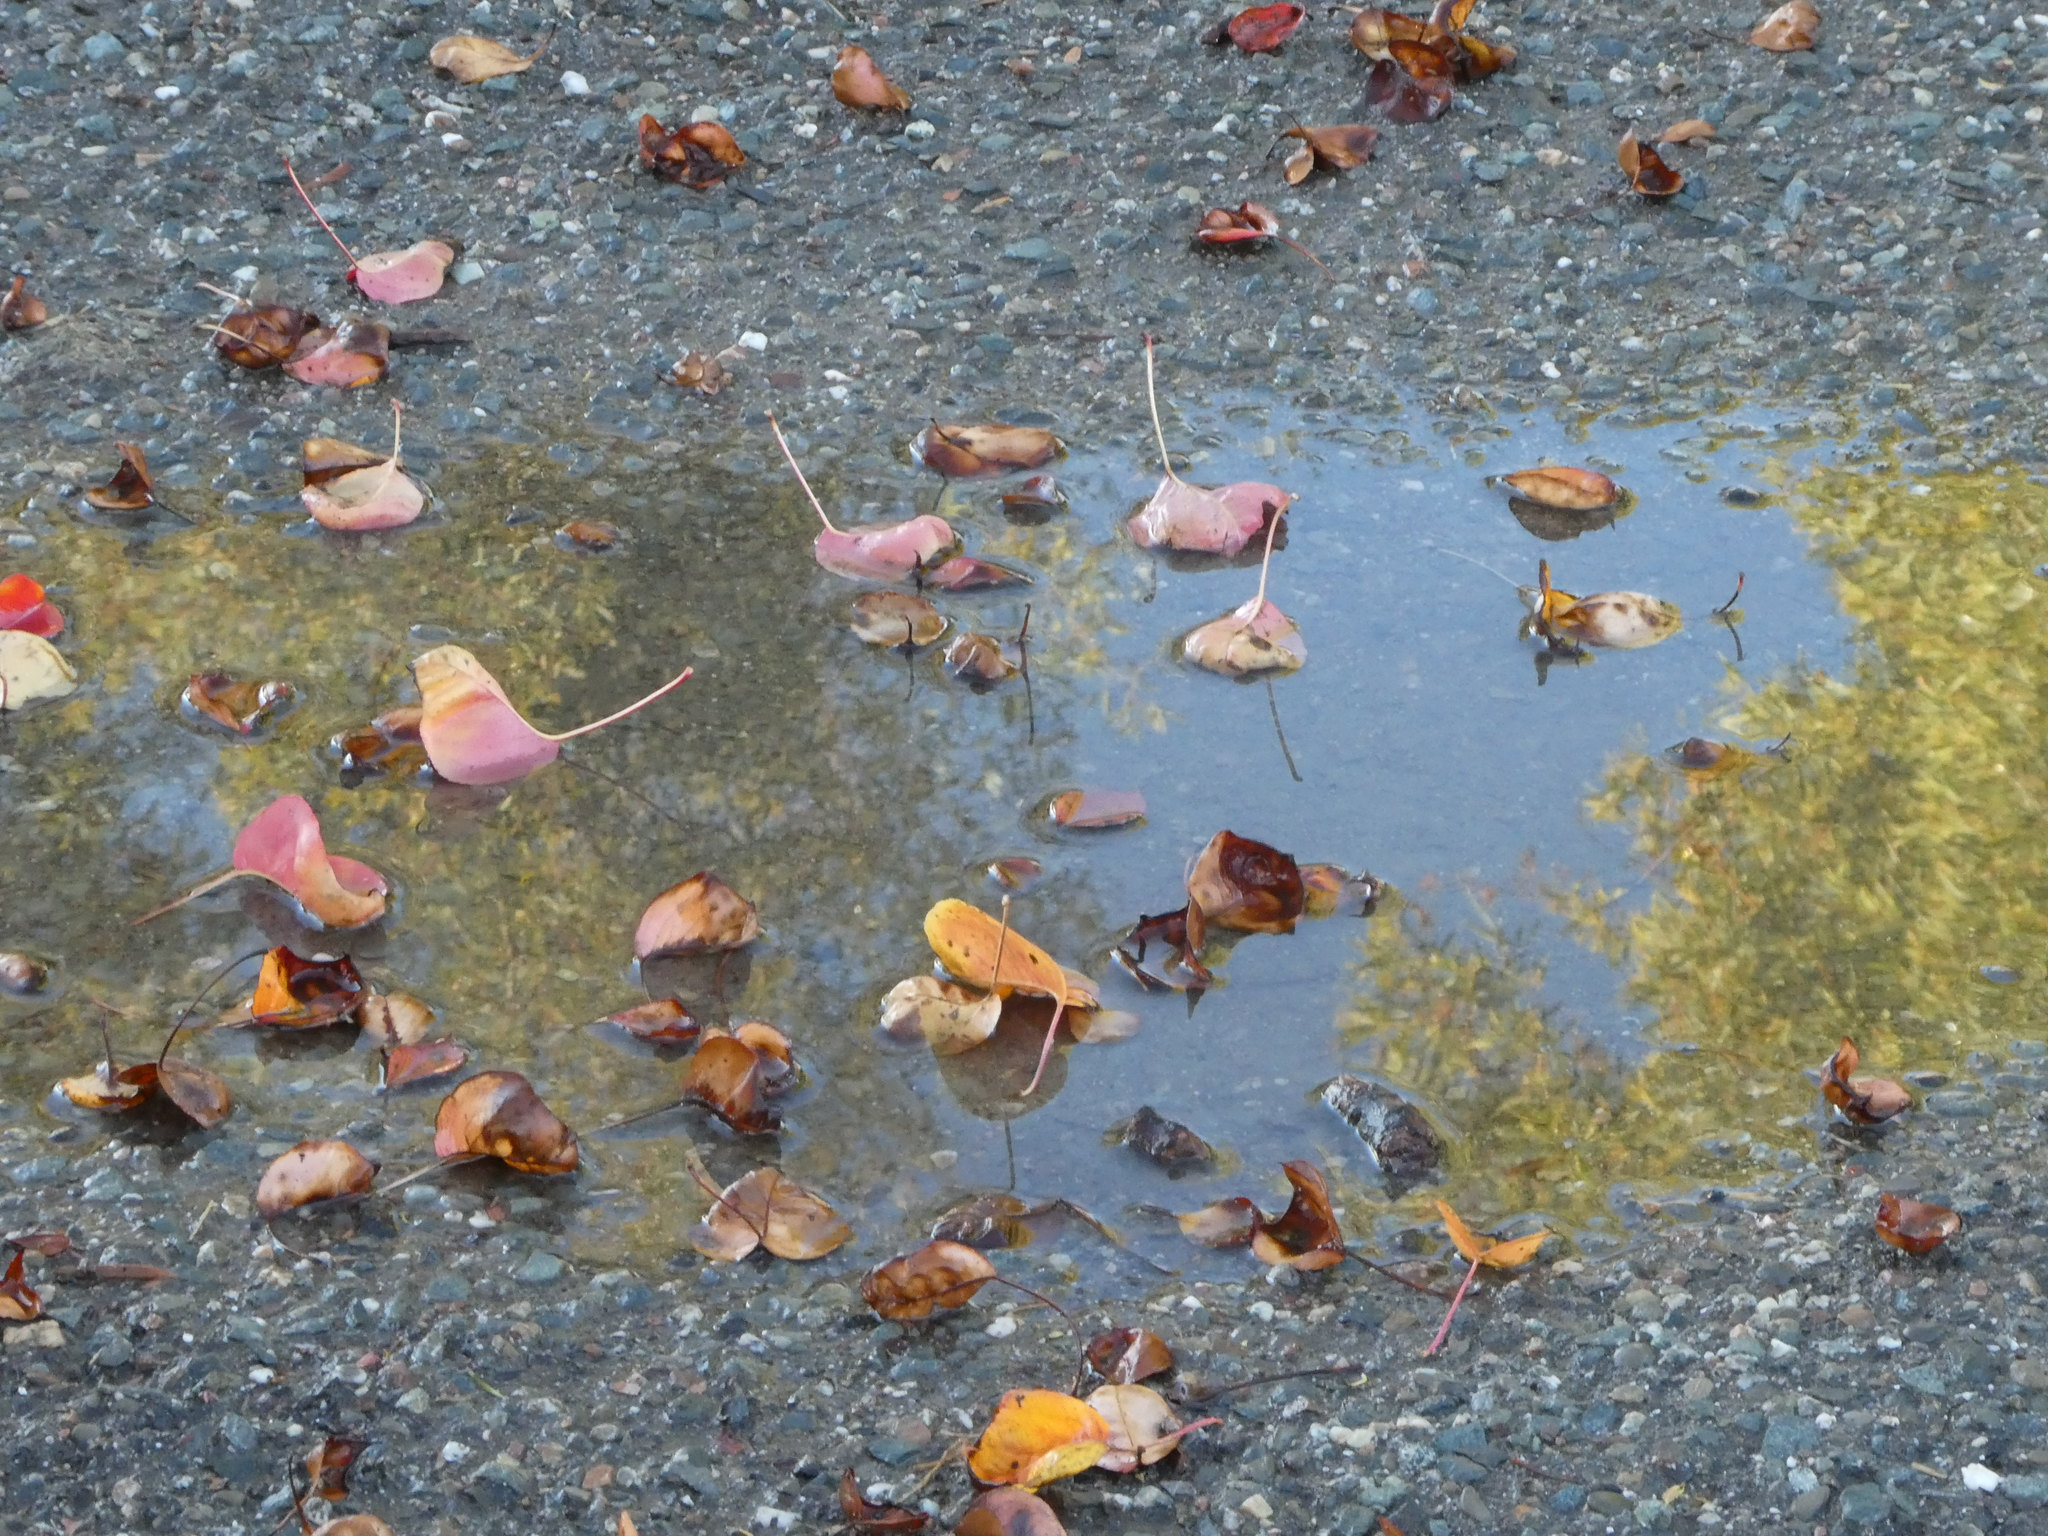 2018-11-22 - After the rain!